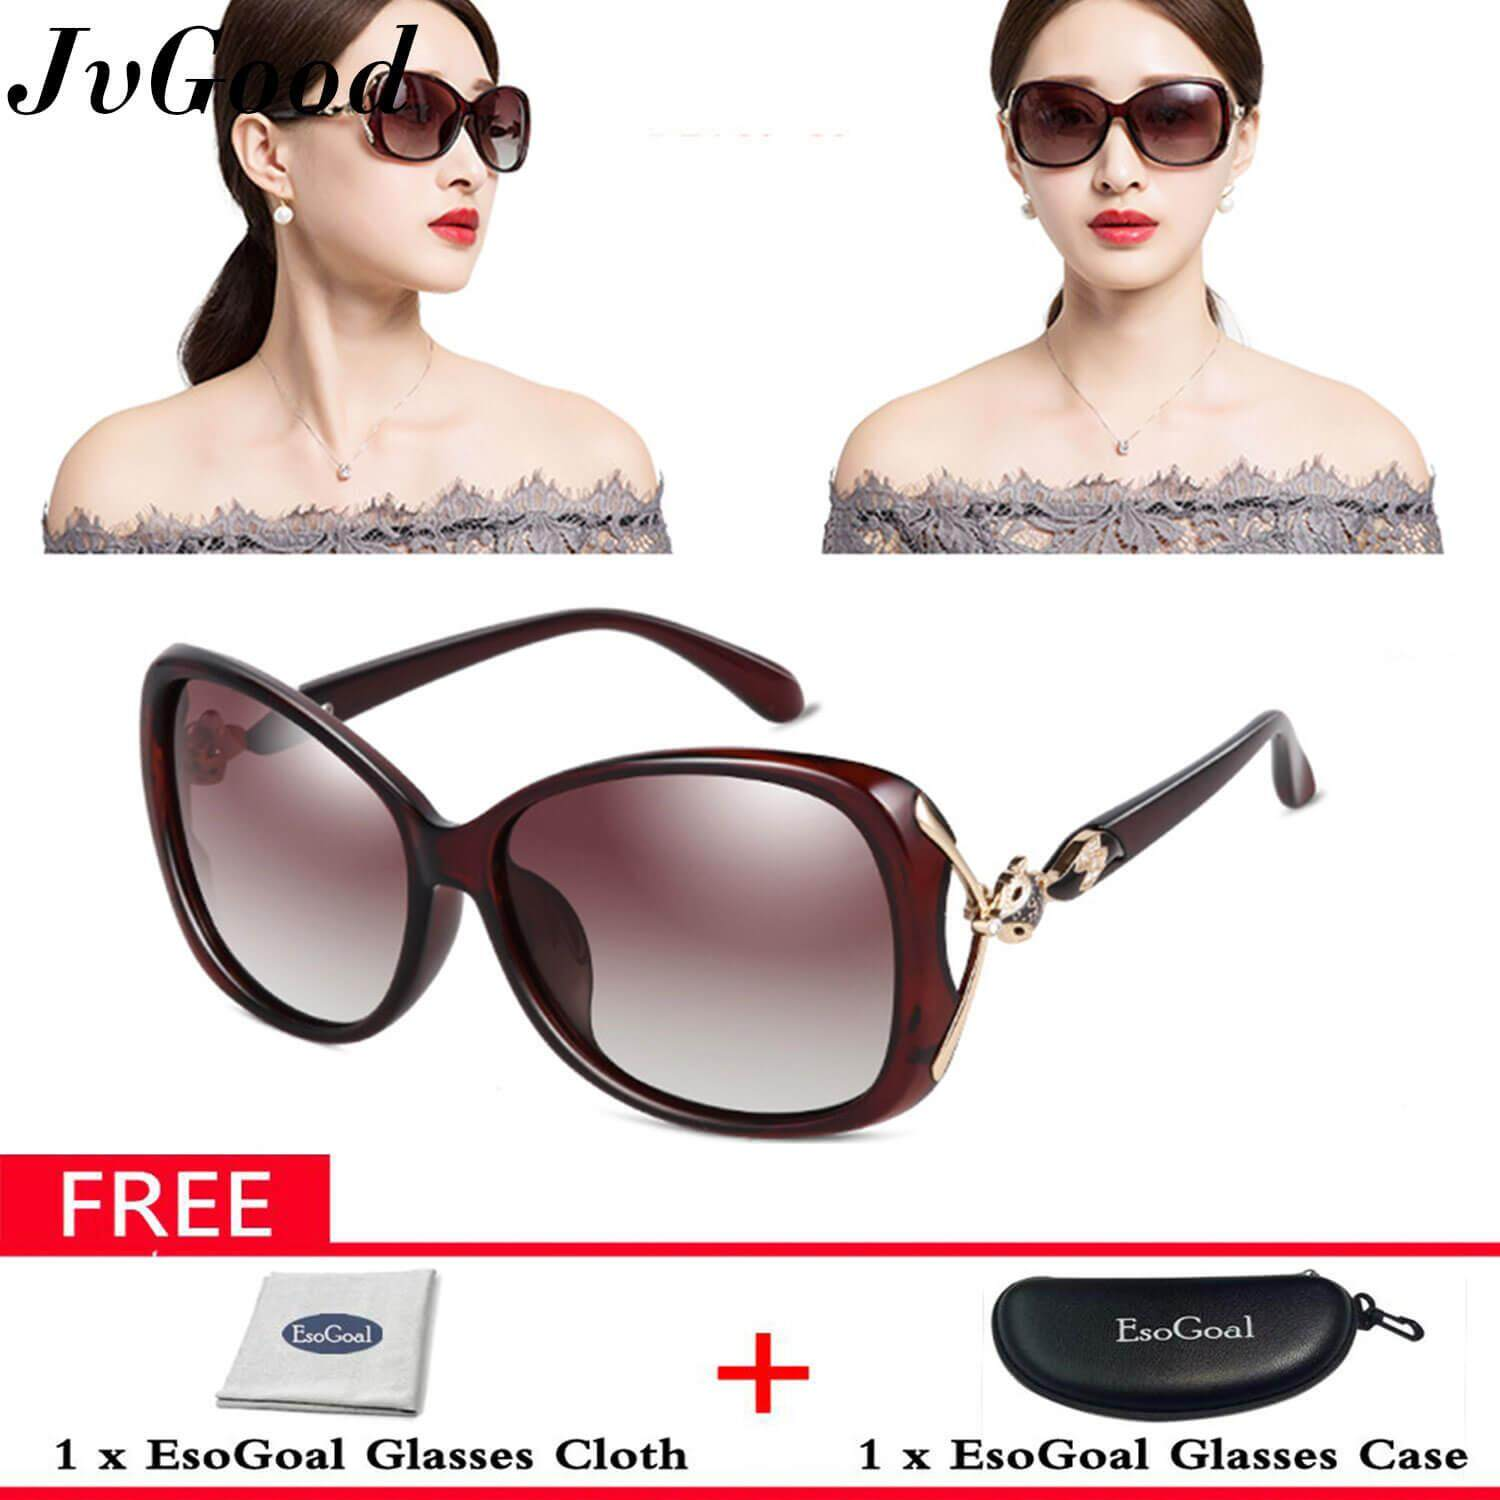 a080e6a0ae7e JvGood Women's Shades Oversized Polarized Fox Sunglasses 100% UV Protection  with Free Storage Box